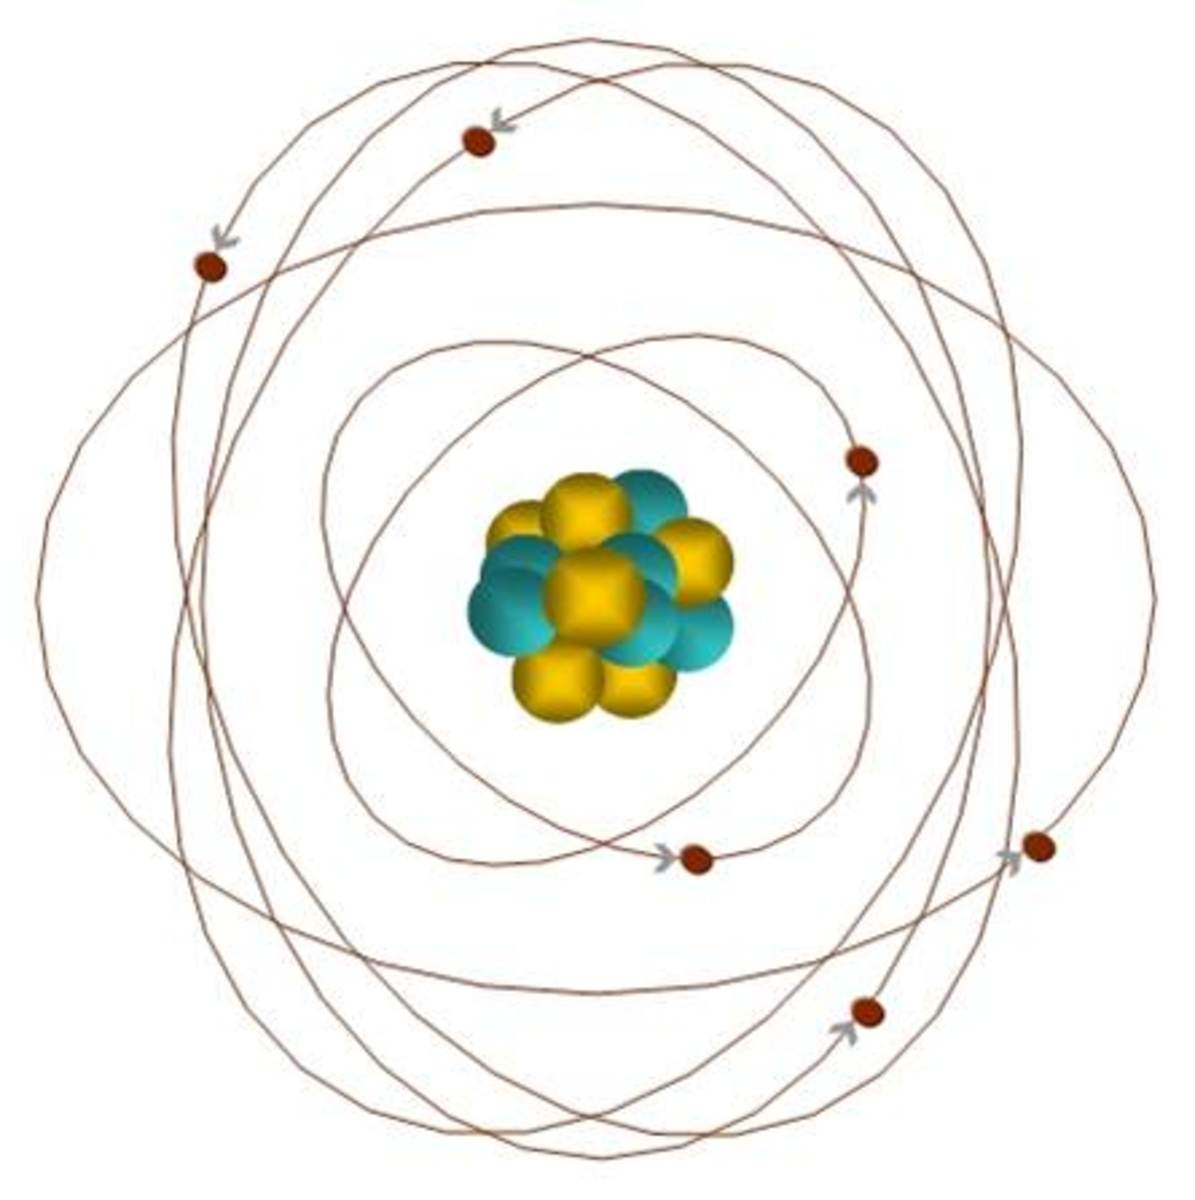 structure-of-an-atom-micro-teaching-session